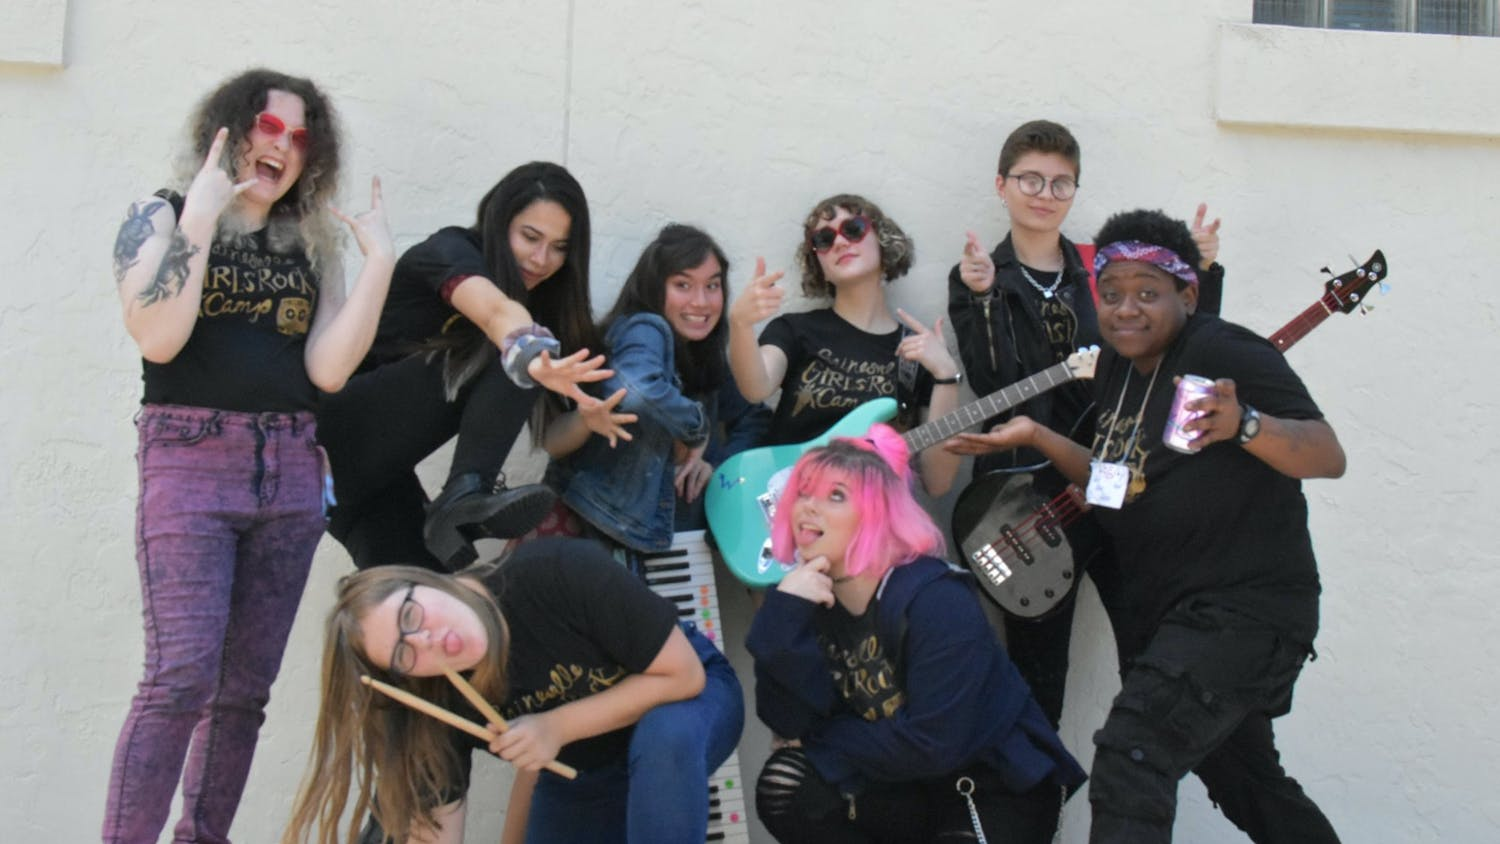 Gainesville Girls Rock Camp is a nonprofit organization that uses music, art and creative expression to amplify the voices of marginalized gender groups. (Courtesy to The Alligator)